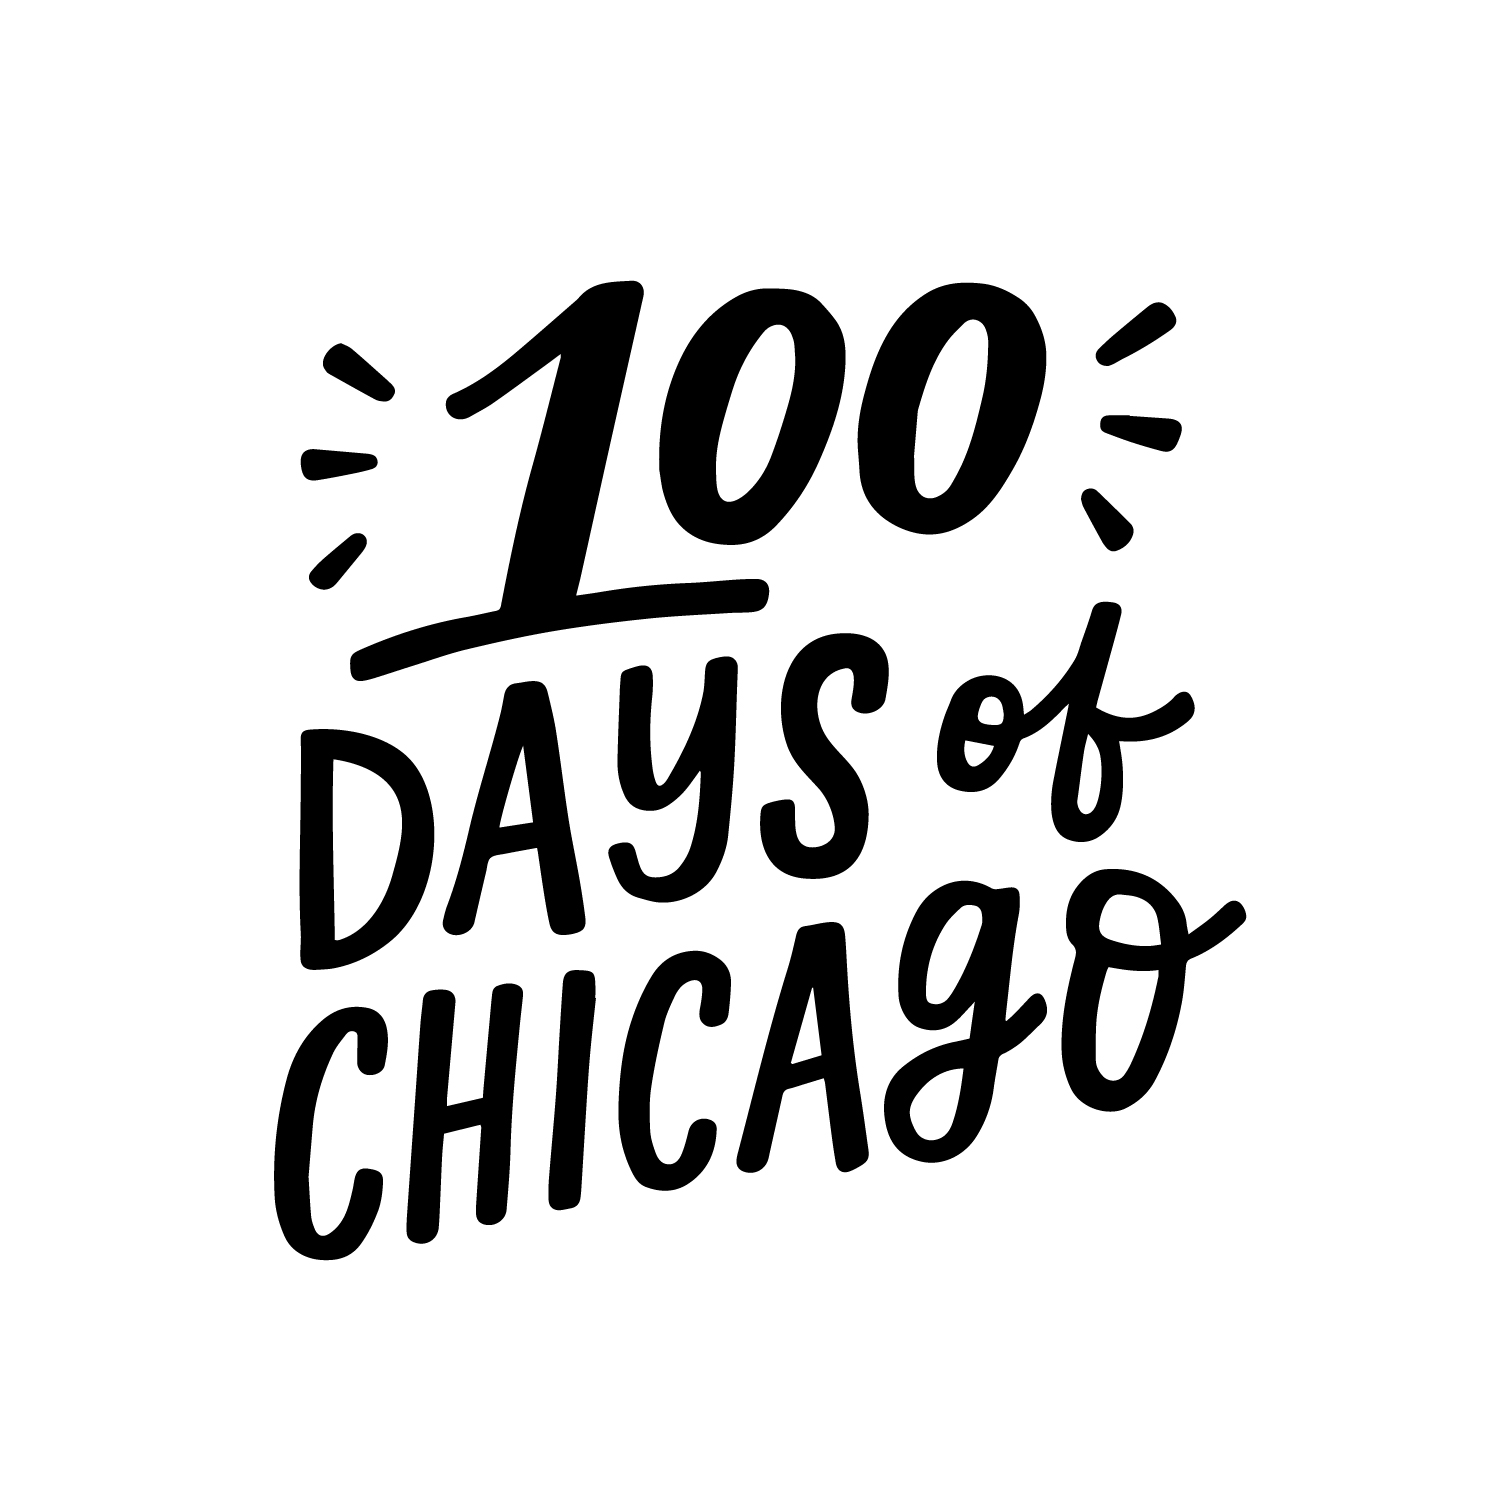 100 Days of Chicago Logo by Lettering Works